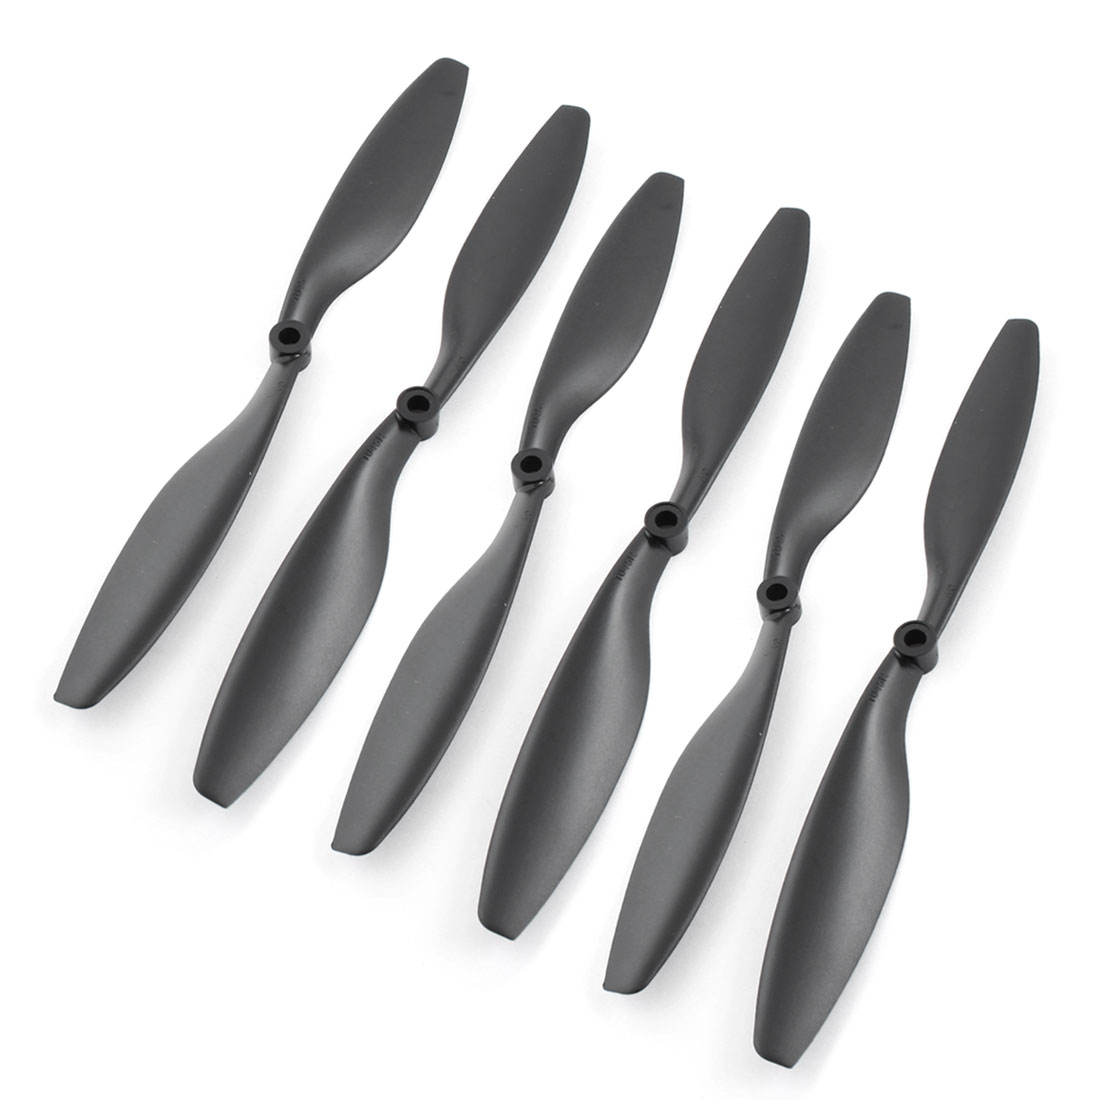 3 Pairs 1045 10x4.5 Black Plastic CW/CCW Prop for RC Quadcopter Hexacopter